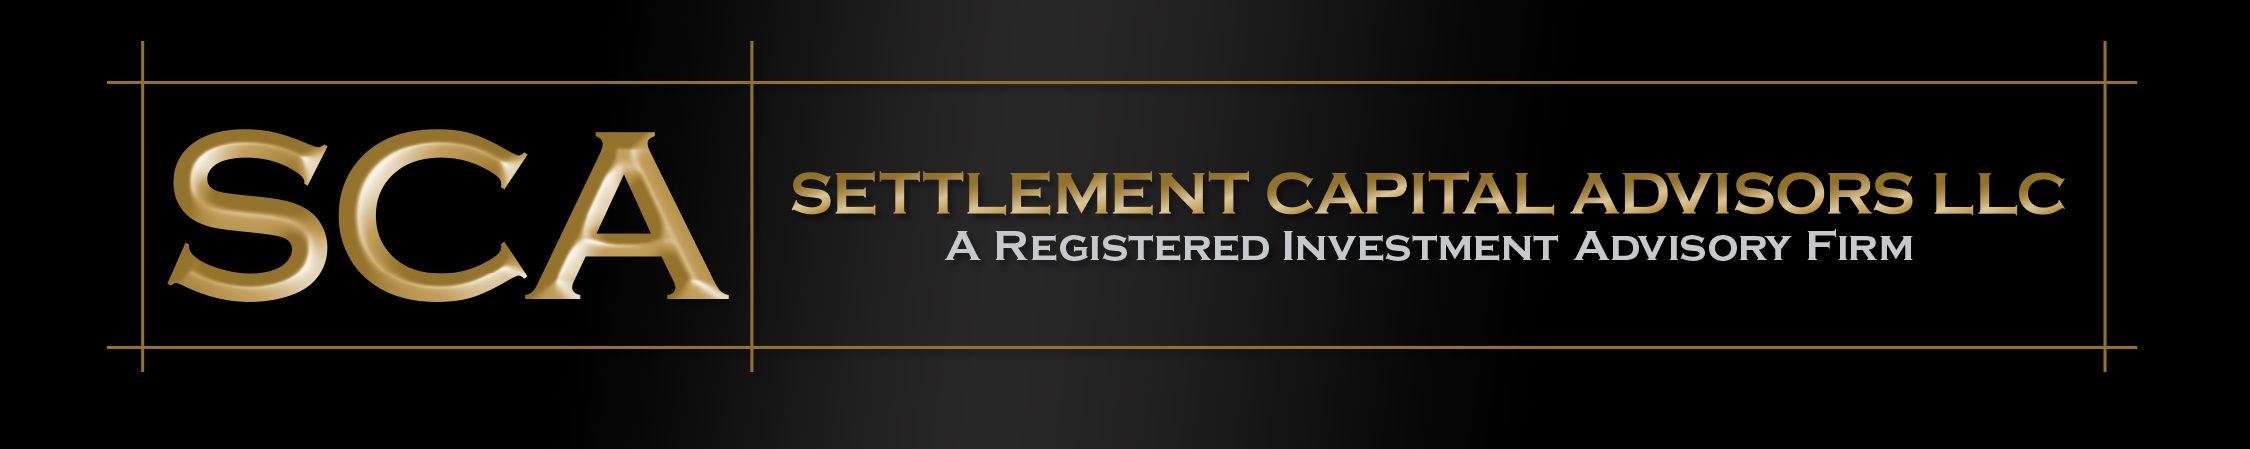 SETTLEMENT CAPITAL ADVISORS